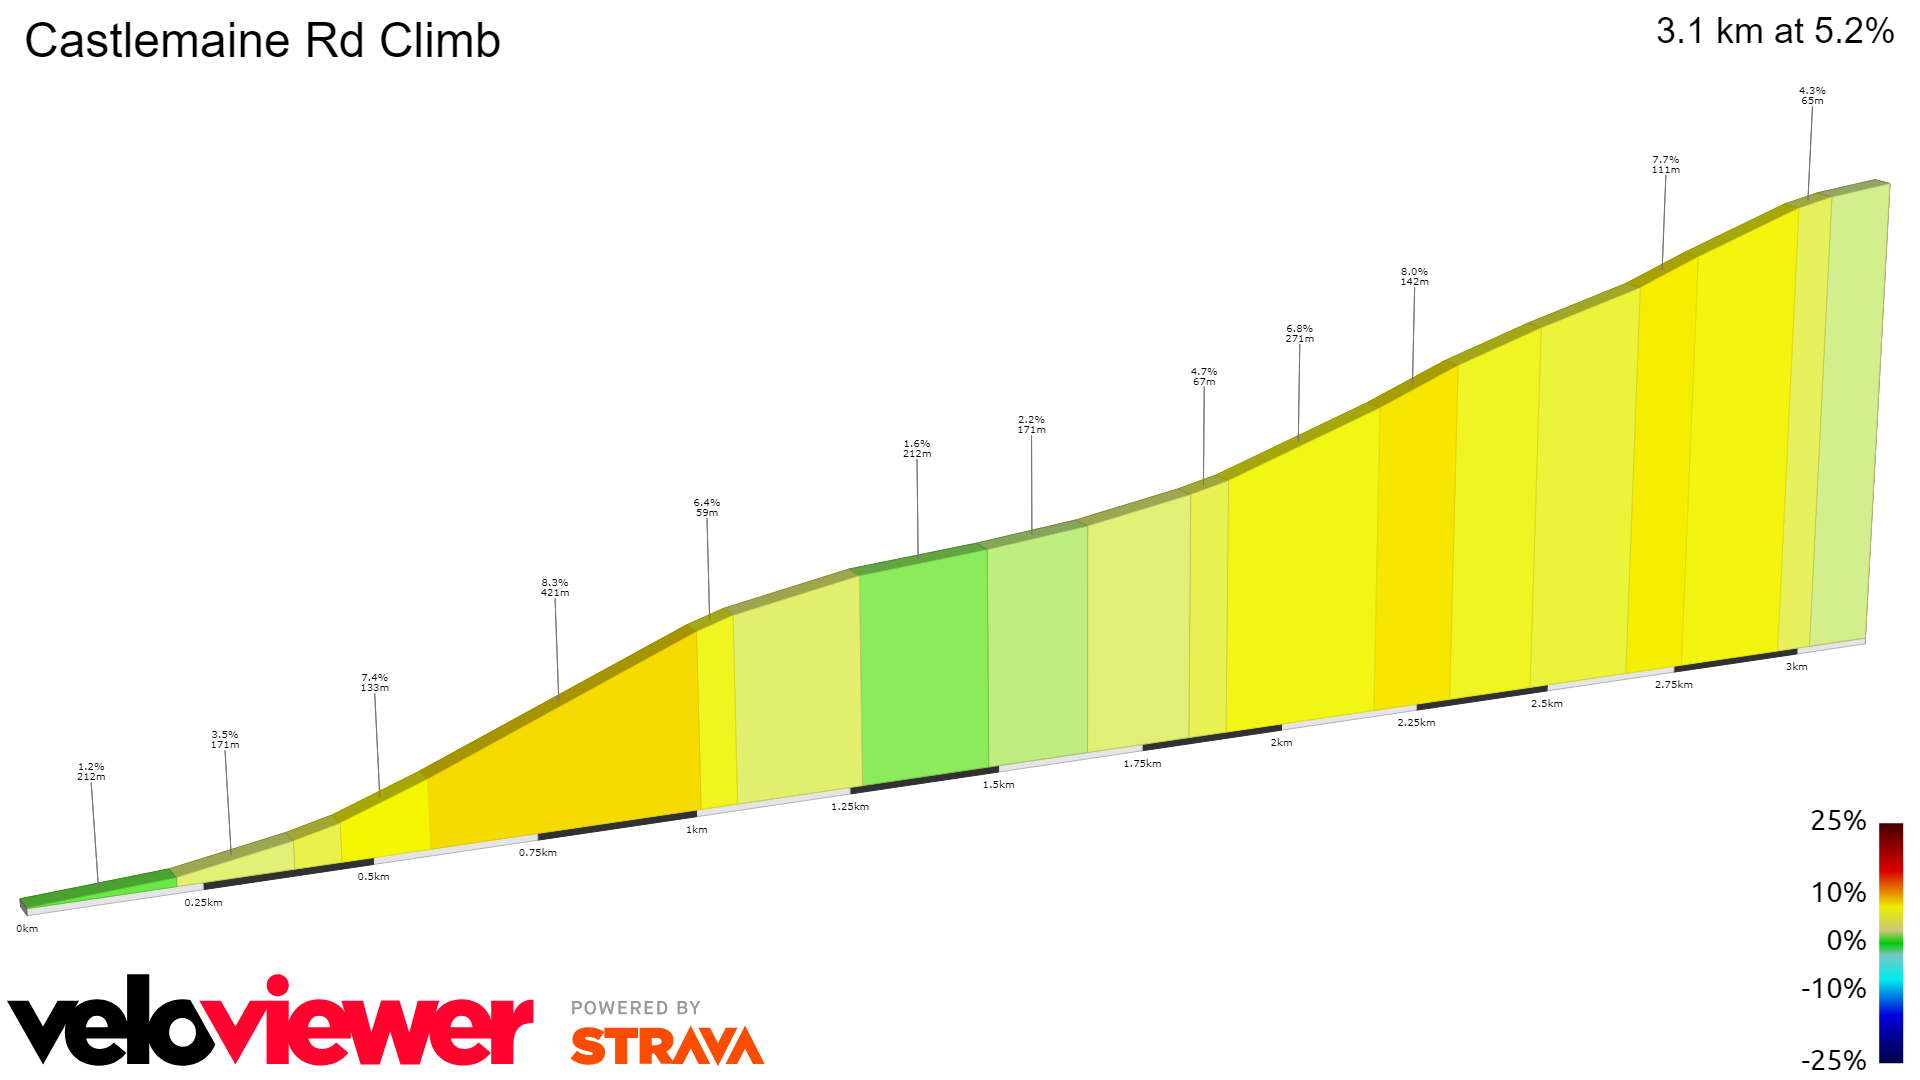 2D Elevation profile image for Castlemaine Rd Climb